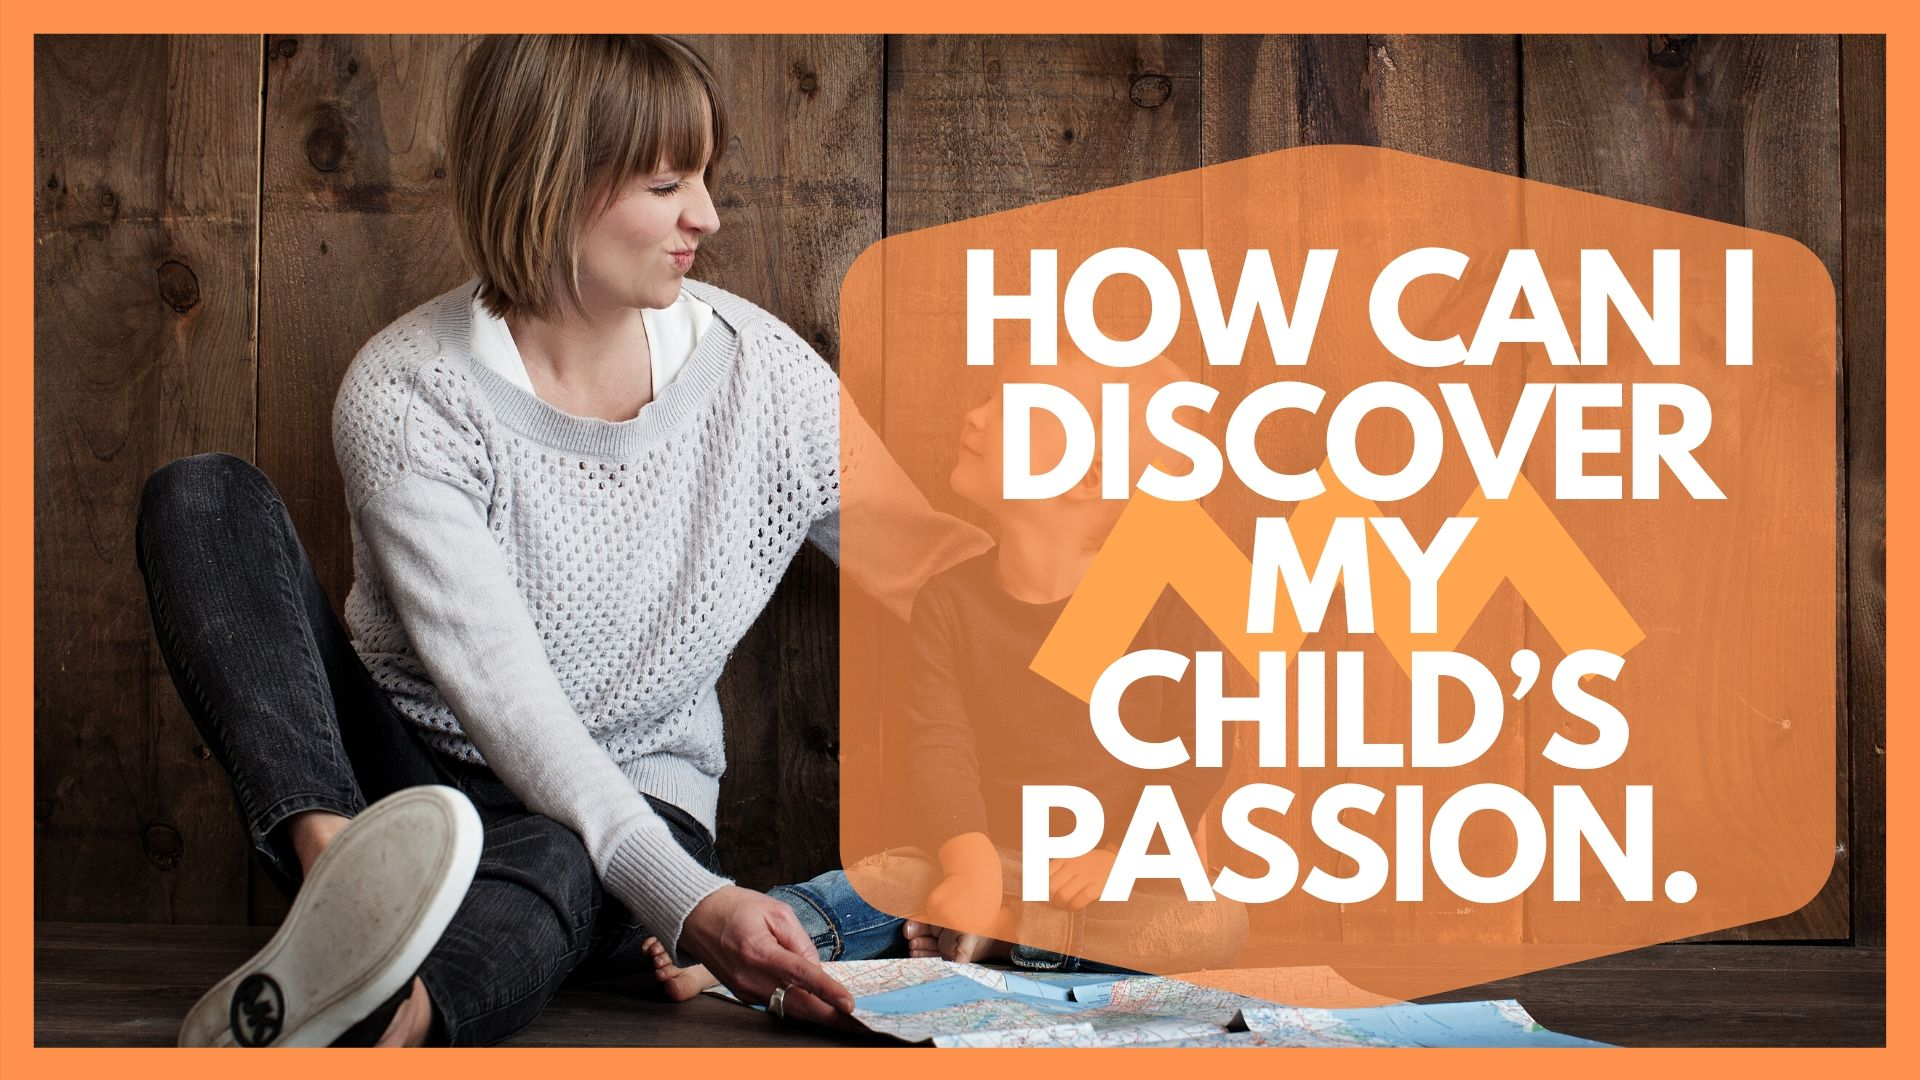 HOW CAN I DISCOVER MY CHILD'S PASSION